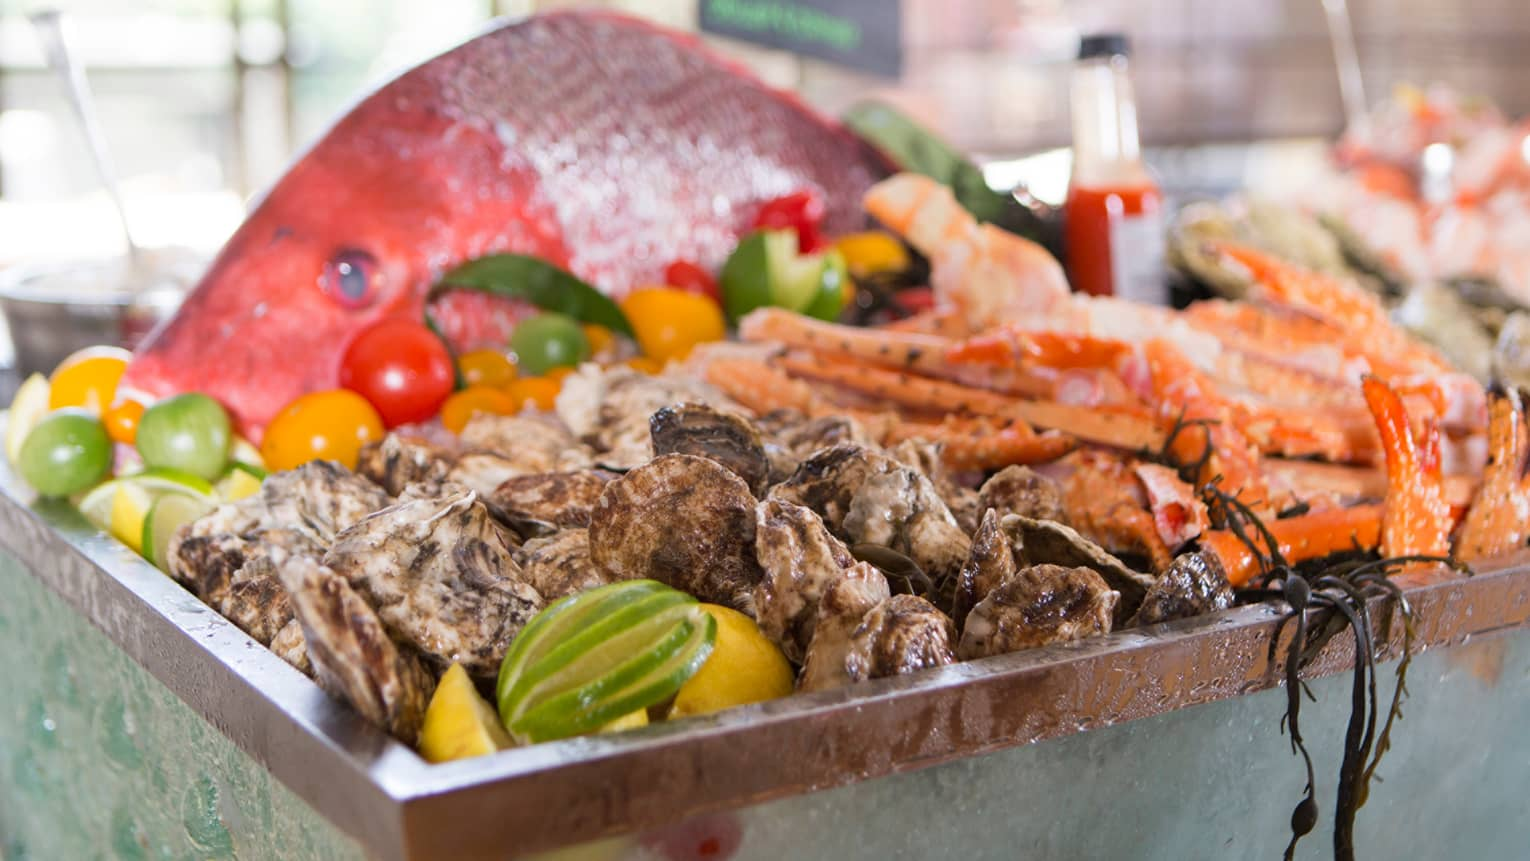 Large red fish on platter with clam shells, crab feet